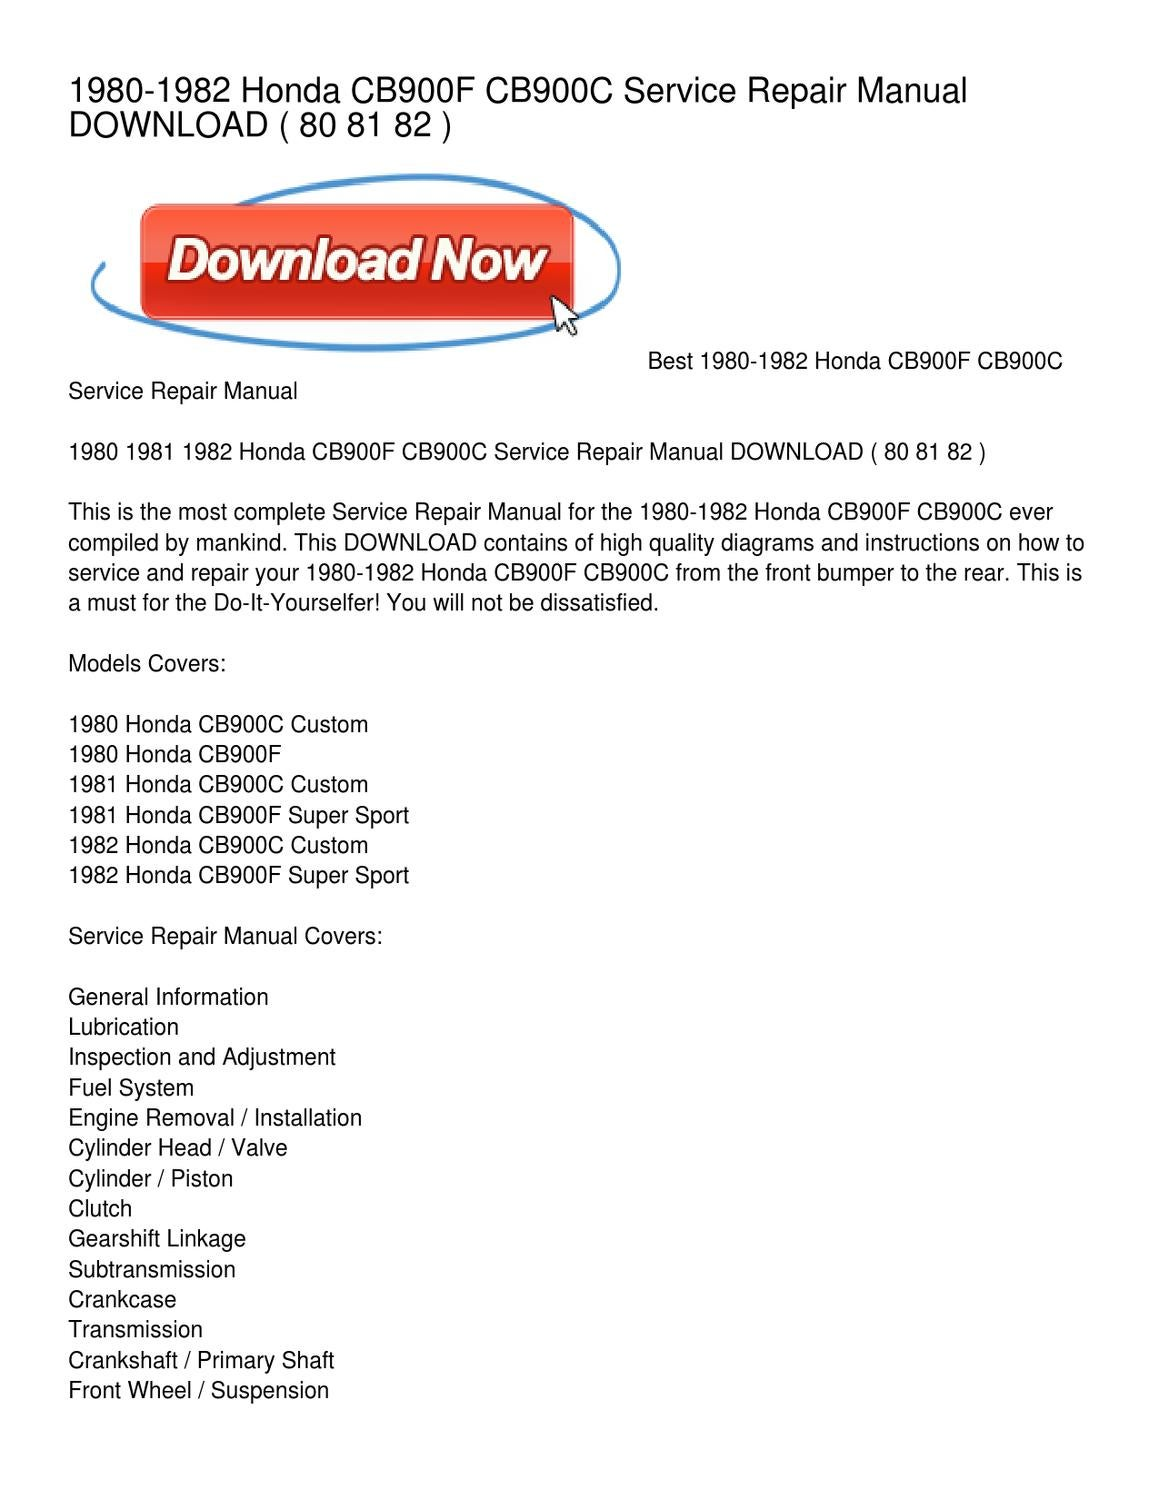 Diagram Honda Cb900 Trusted Schematics Cb900f Wiring 1980 1982 Cb900c Service Repair Manual Download By 1981 Cafe Racer